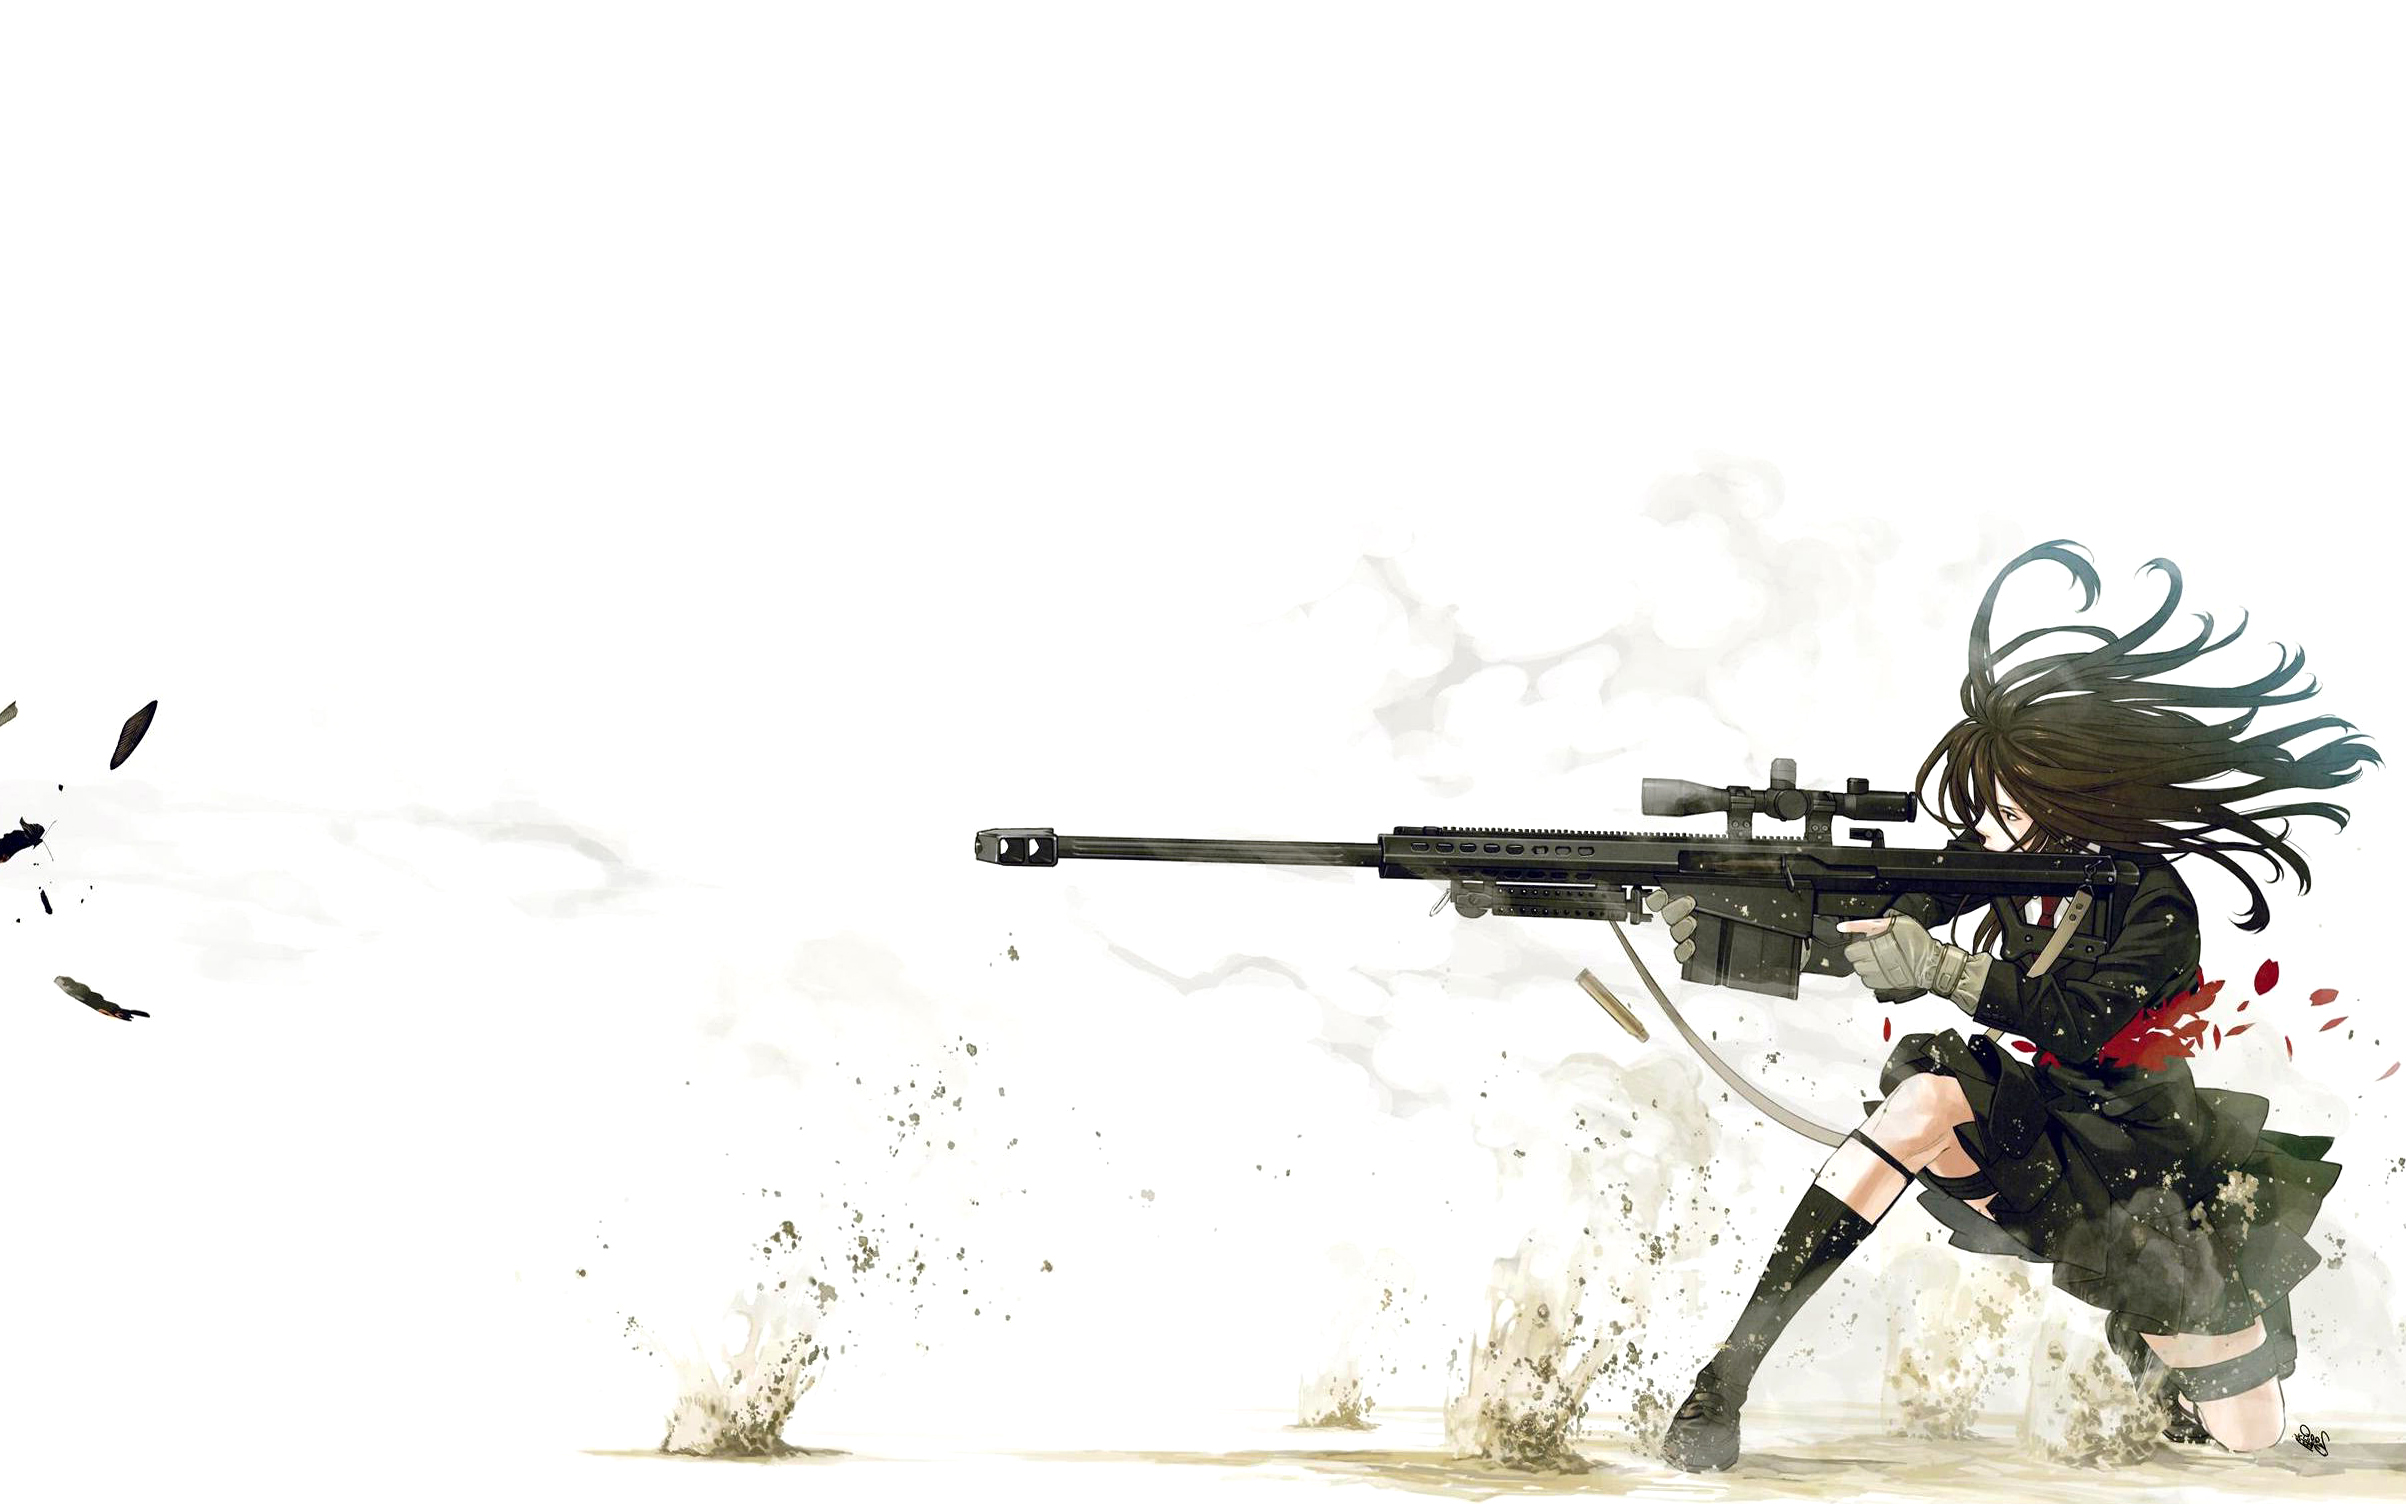 Drawn snipers wallpaper Anime  Anime 2406x1504 Images